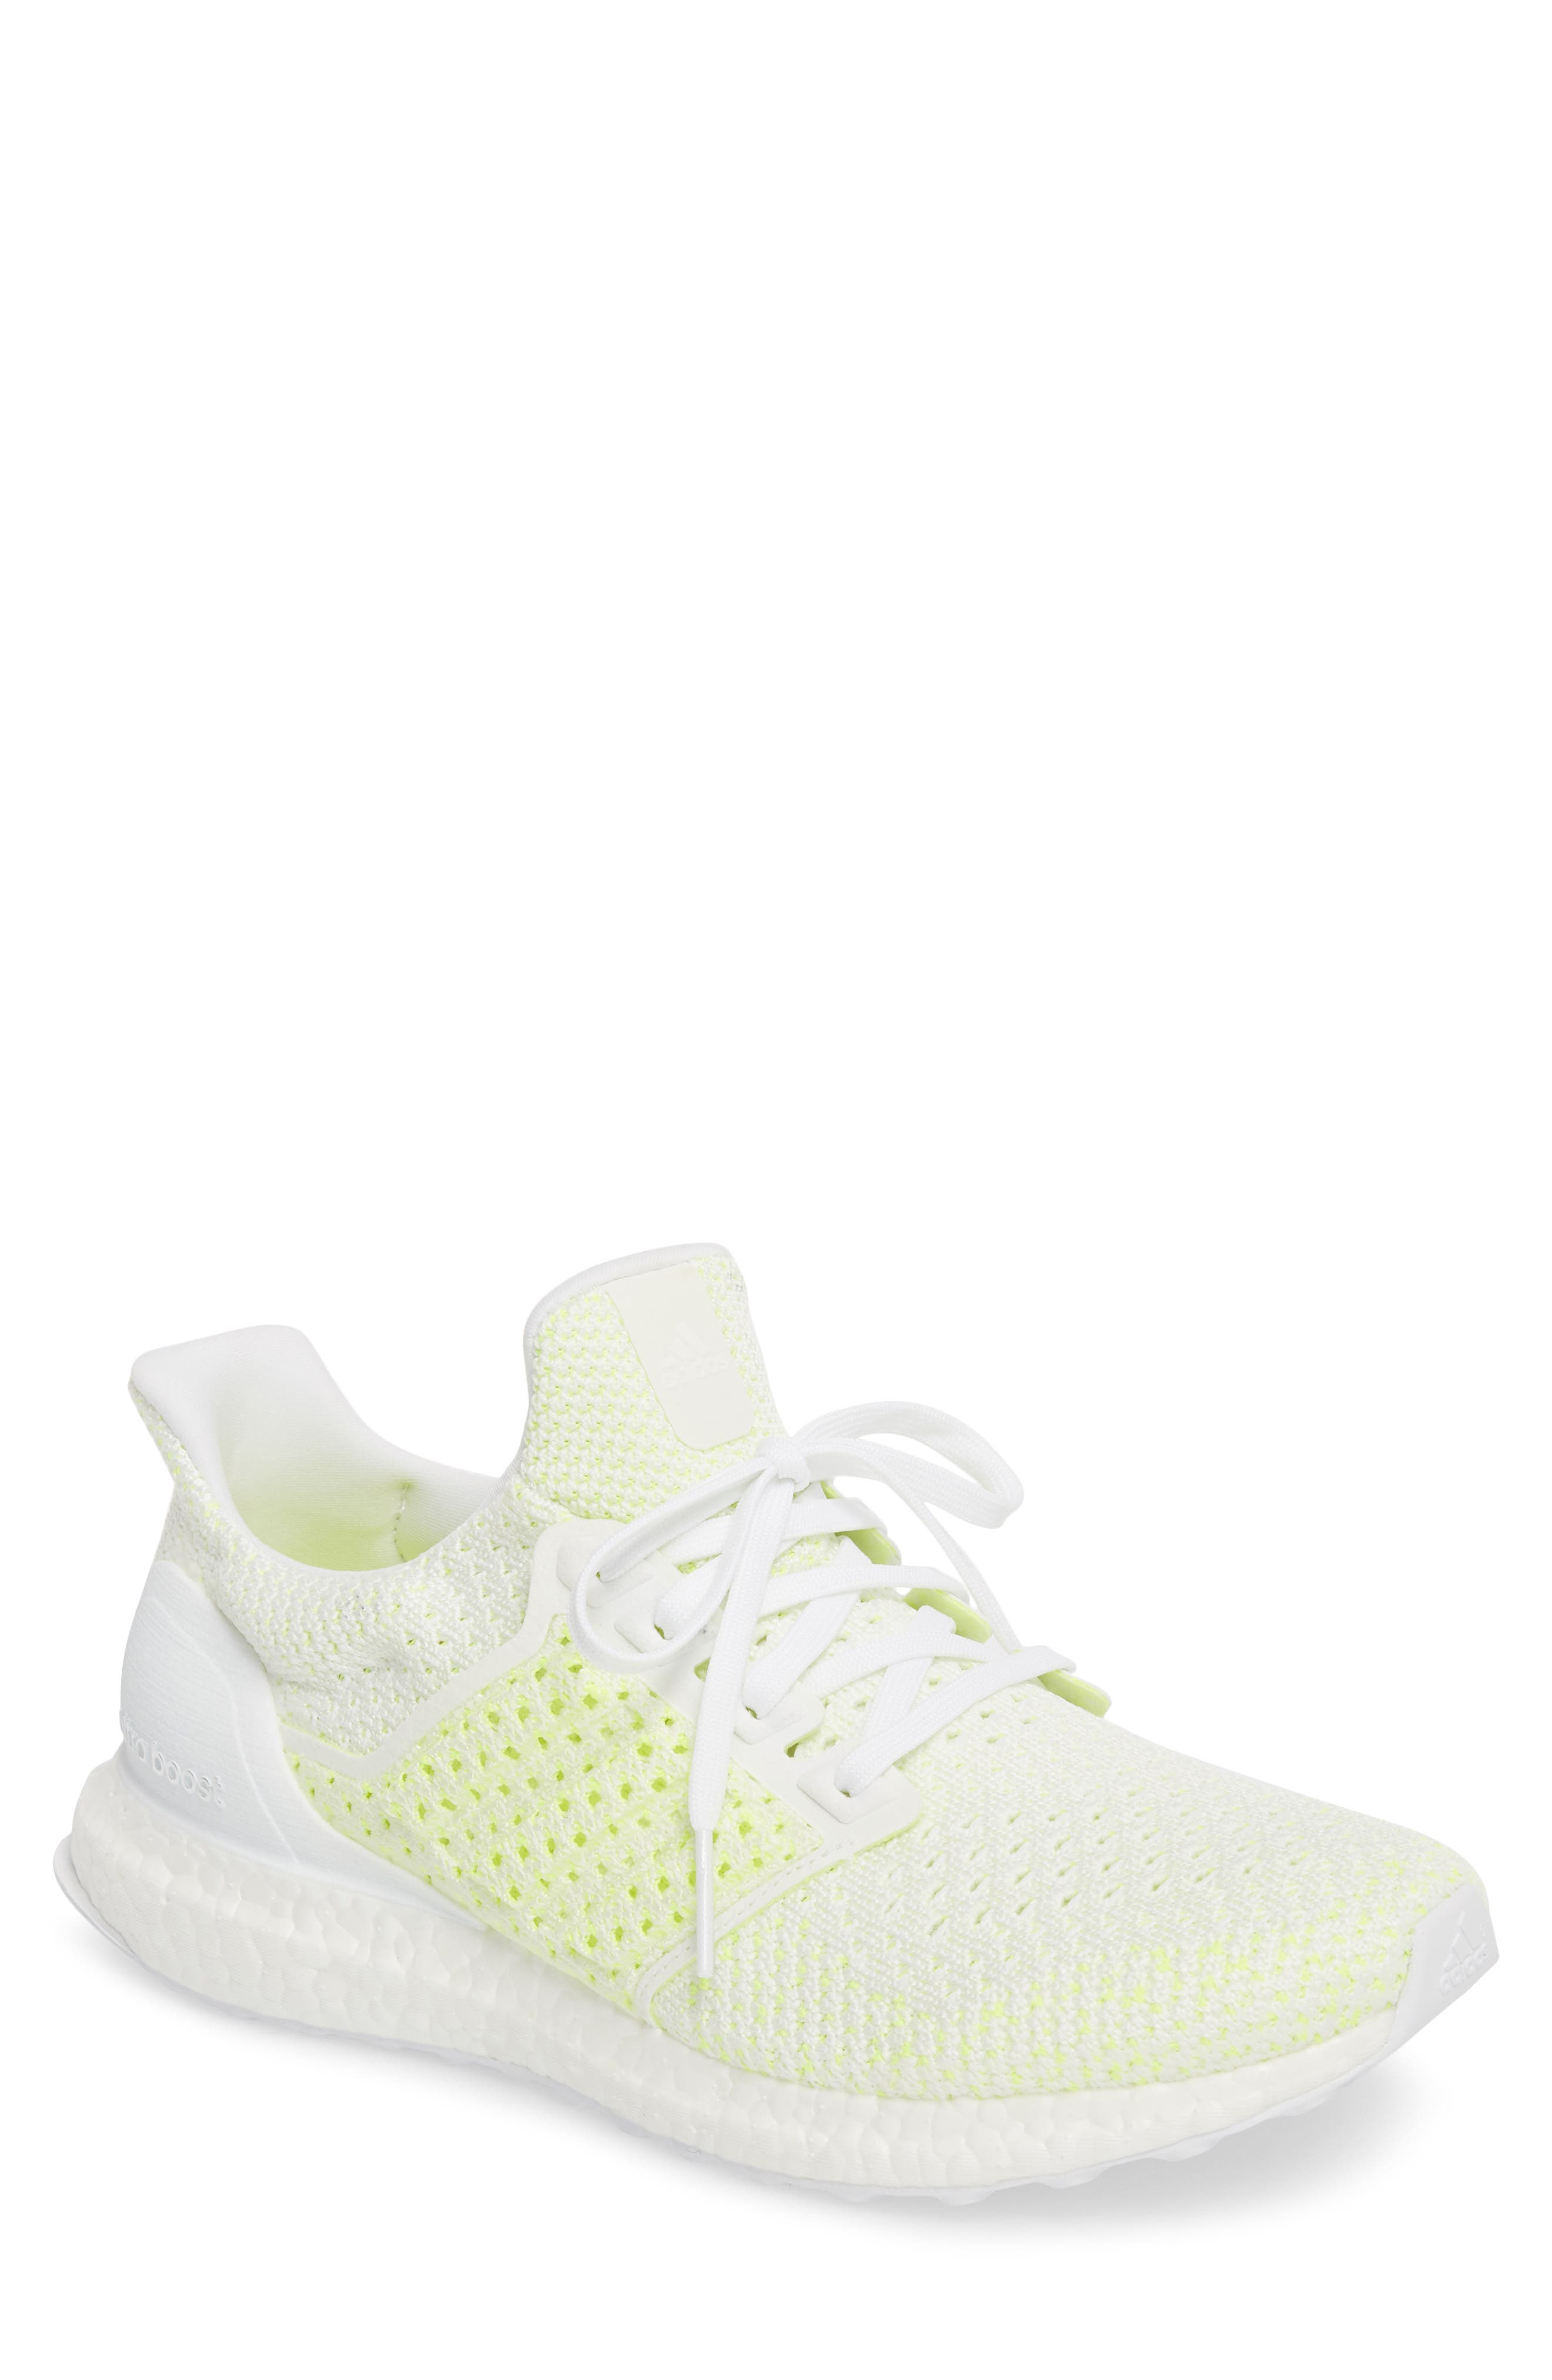 Ultraboost x Clima Running Shoe,                         Main,                         color, WHITE/ WHITE/ SOLAR RED